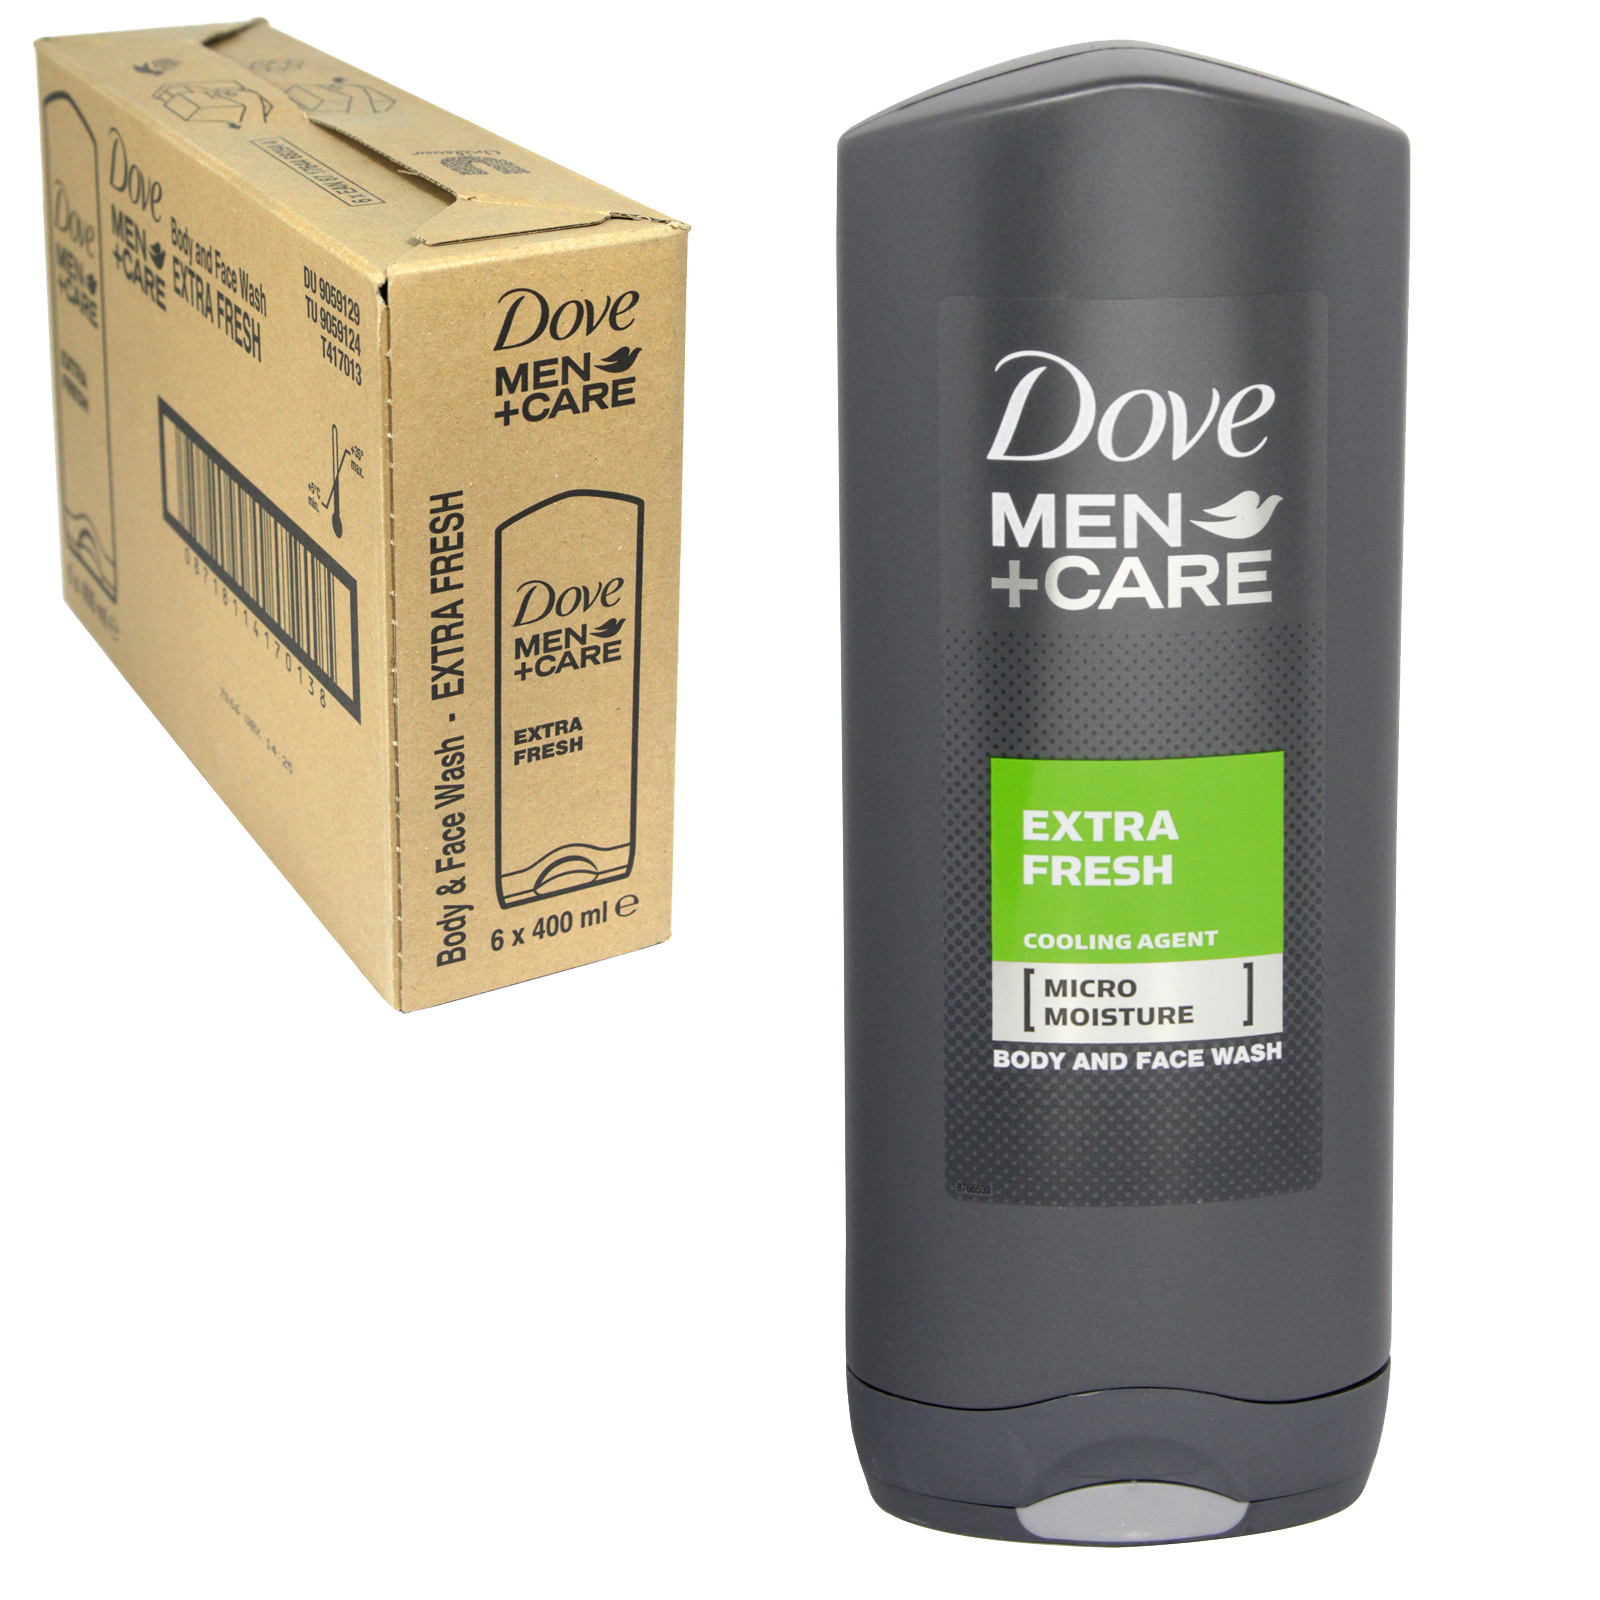 DOVE MEN+CARE 400ML FACE+BODY WASH EXTRA FRESH X 6